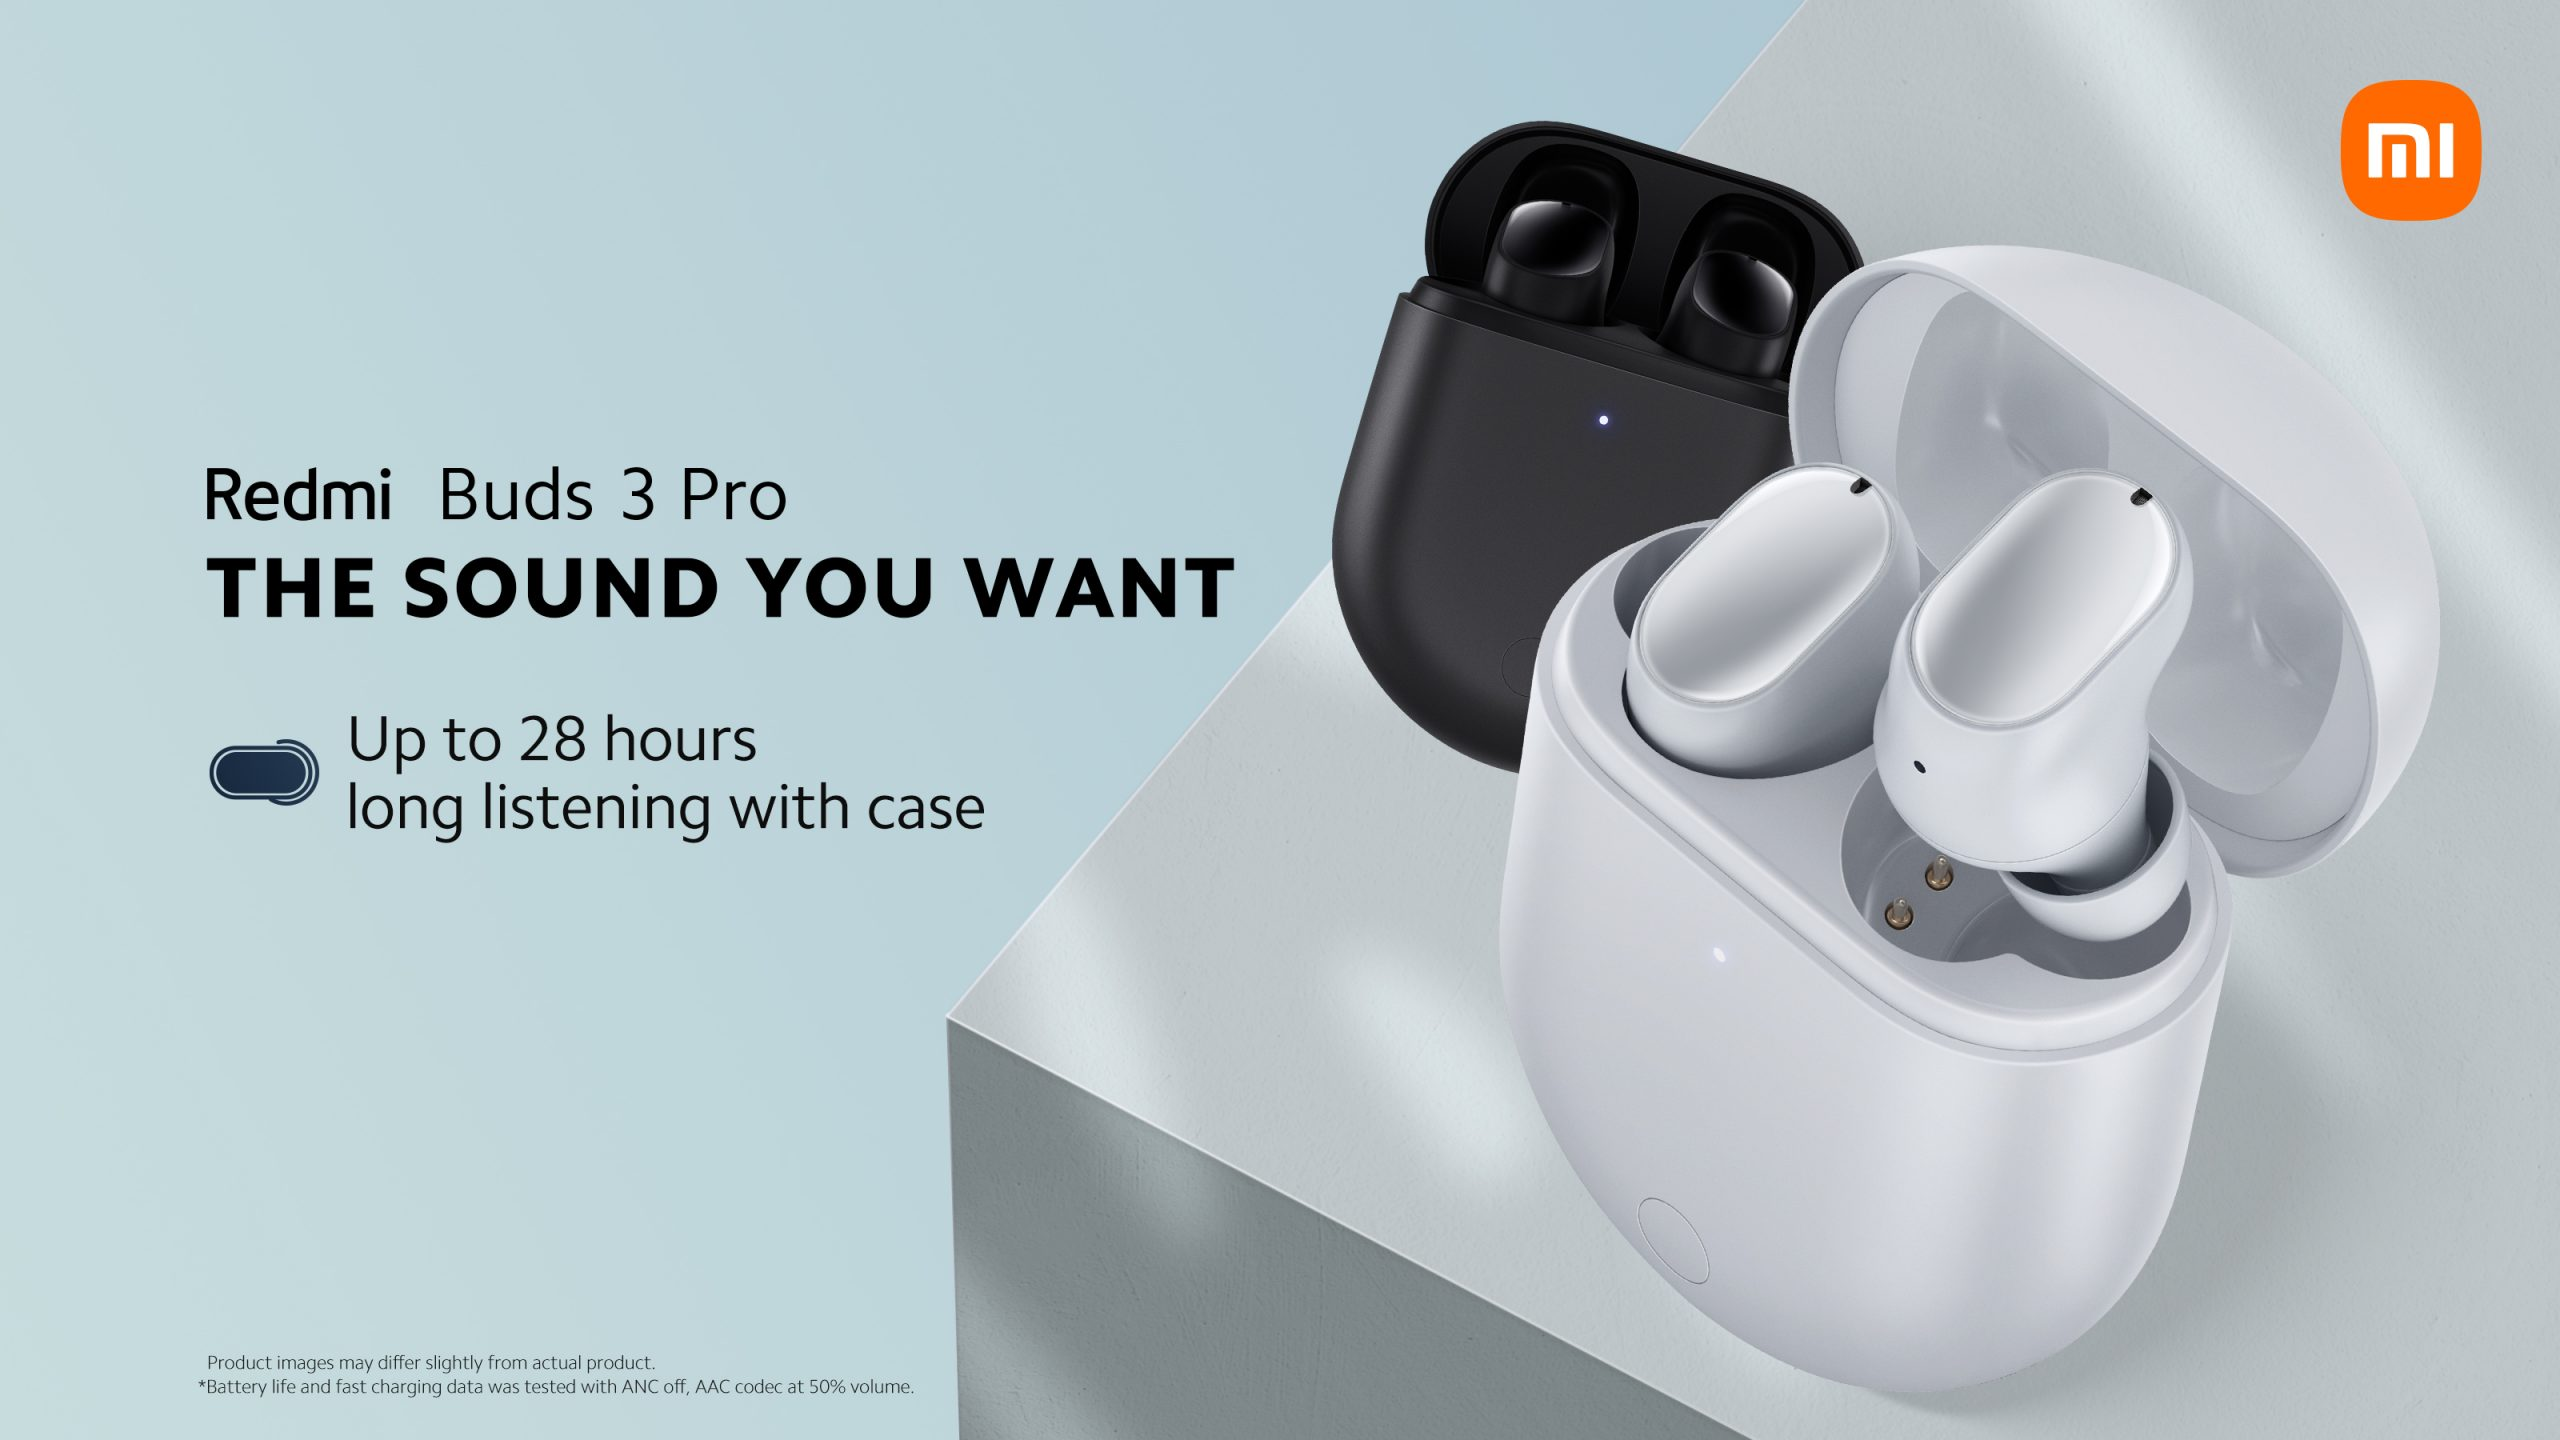 Global version of Redmi Buds 3 Pro headphones at a great price under € 50 directly from the Spanish warehouse - Xiaomi Planet